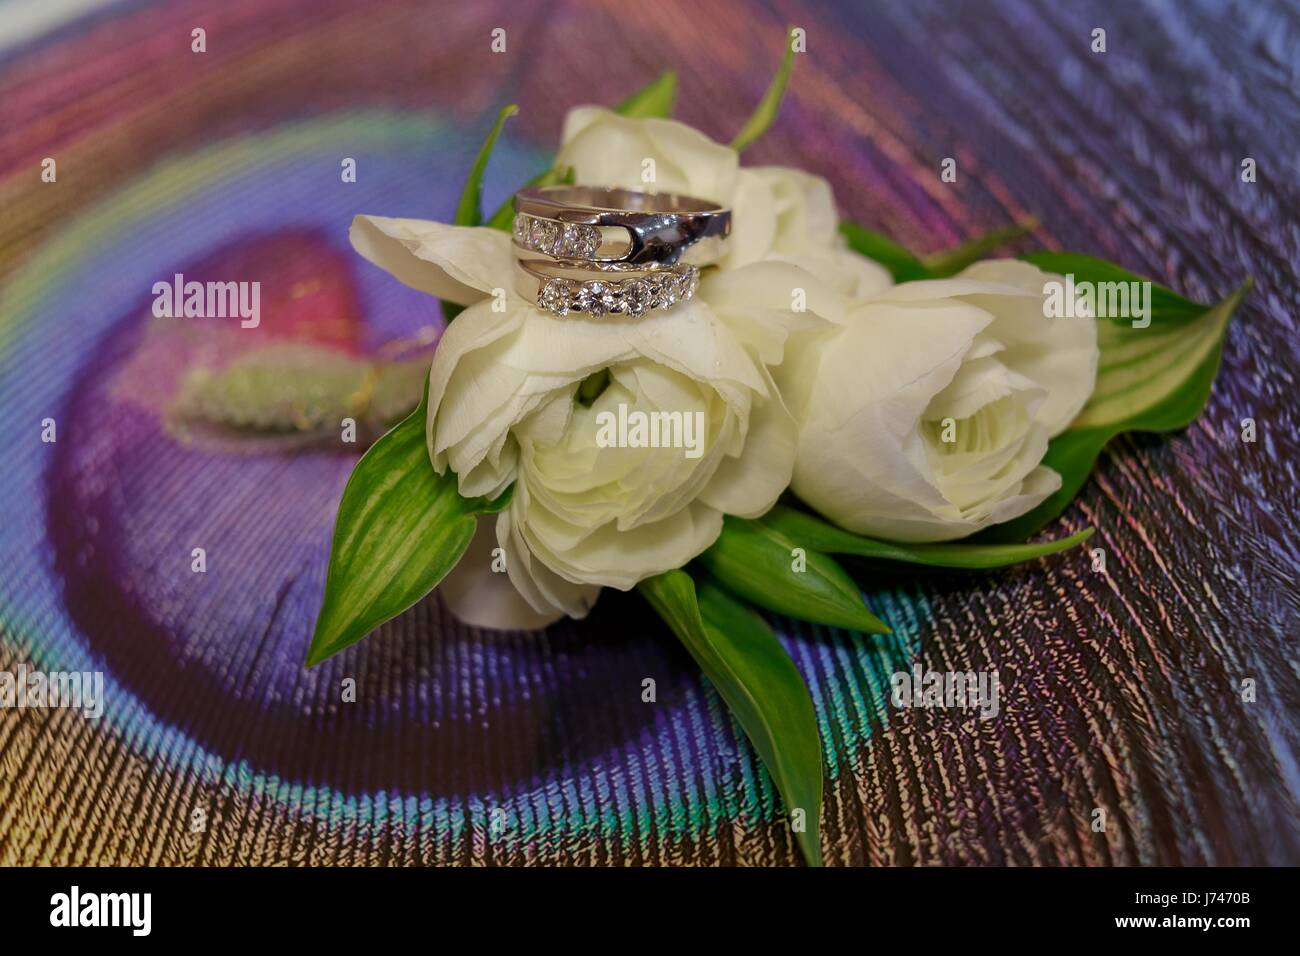 Wedding rings roses day ceremony - Stock Image